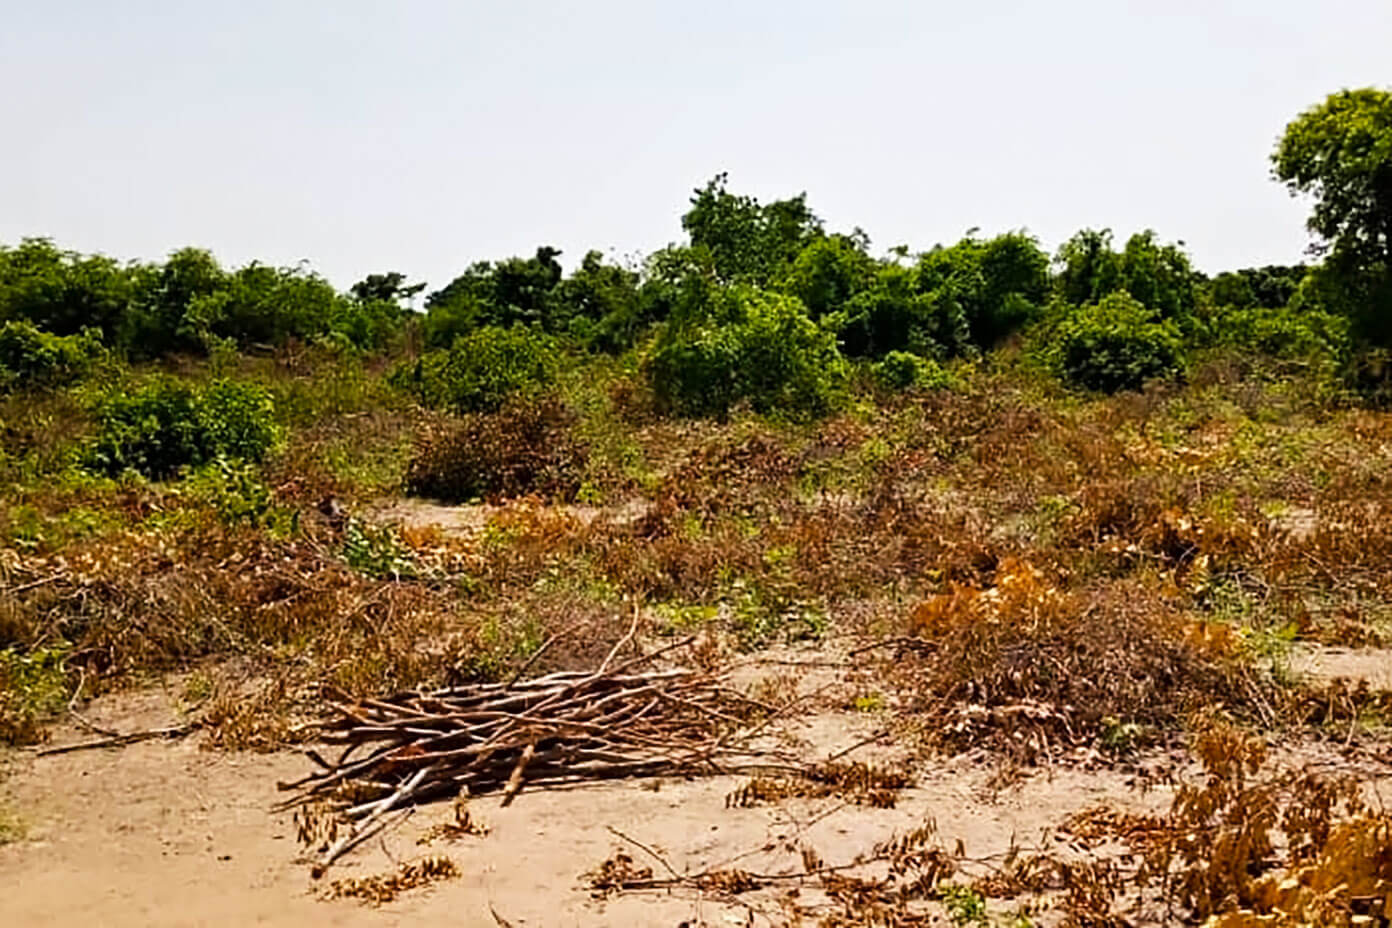 Brush land in Mali